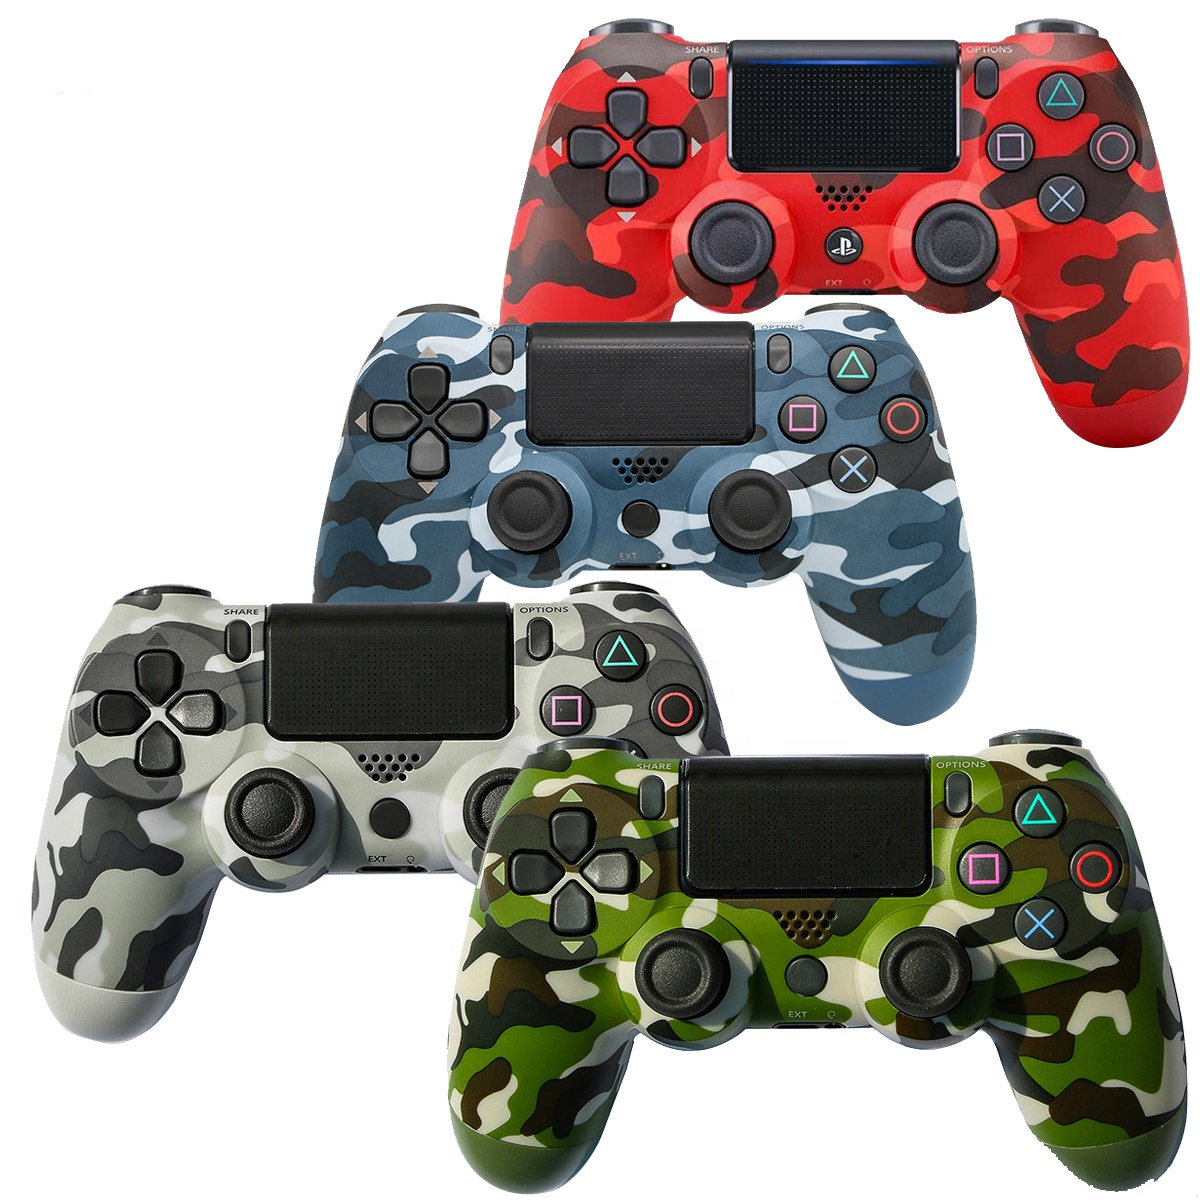 In Stock Camouflage Color Wireless Multiple Vibration 6 Axies Gamepad Joystick Game PS4 <strong>Controller</strong>